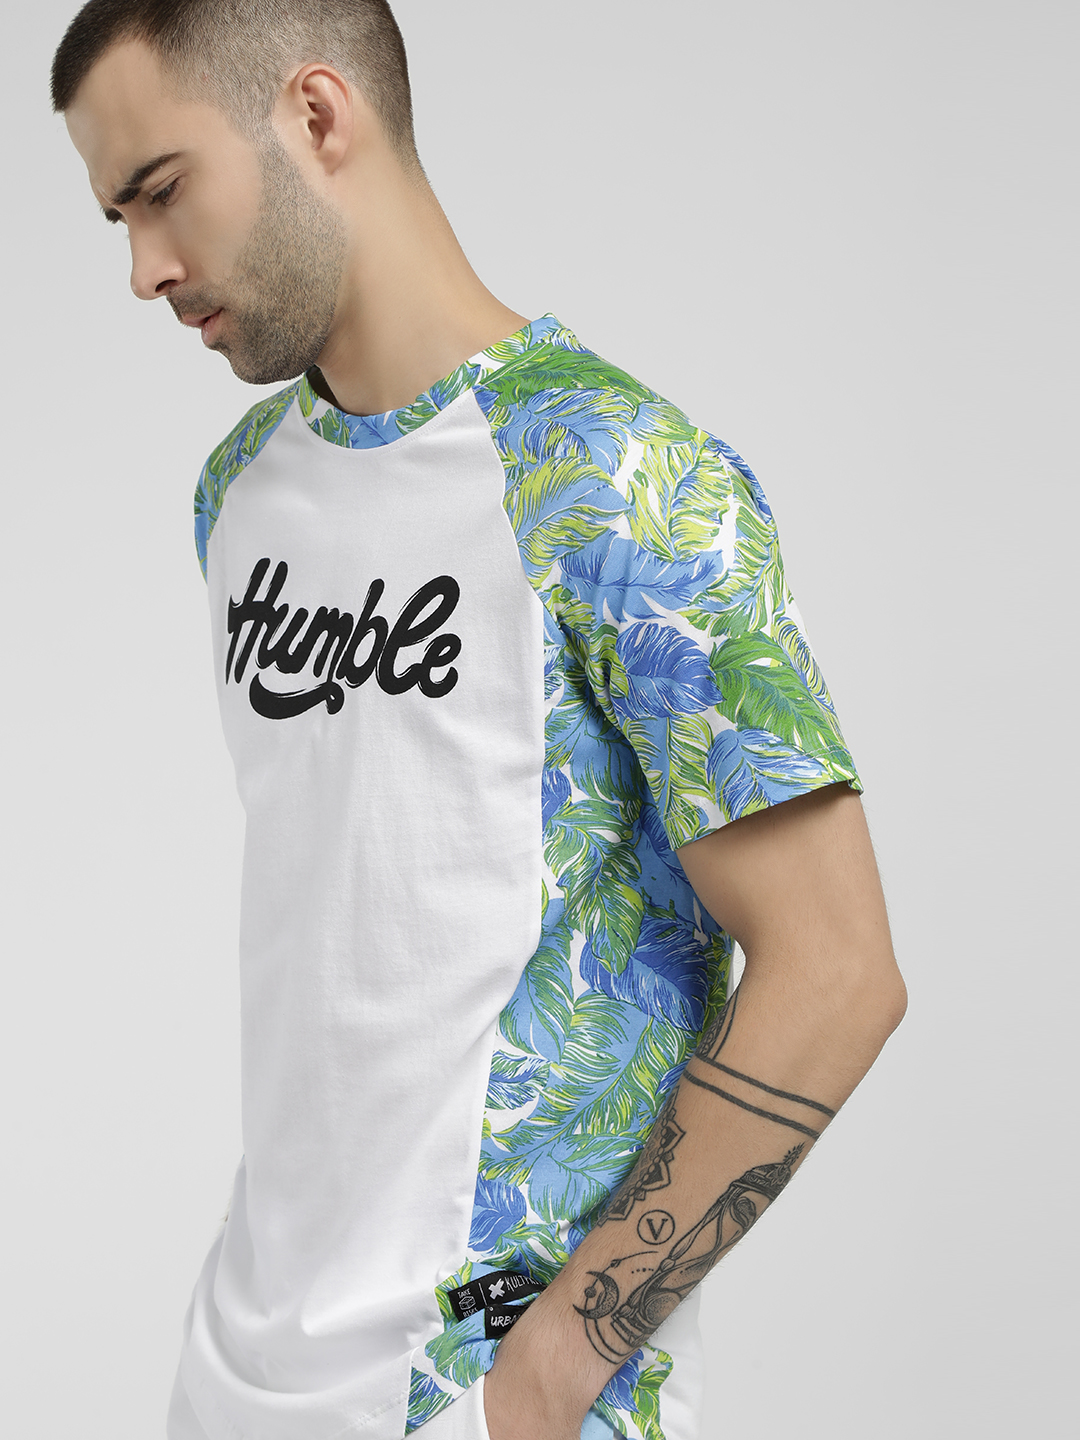 Kultprit White Humble Tropical Print T-Shirt 1